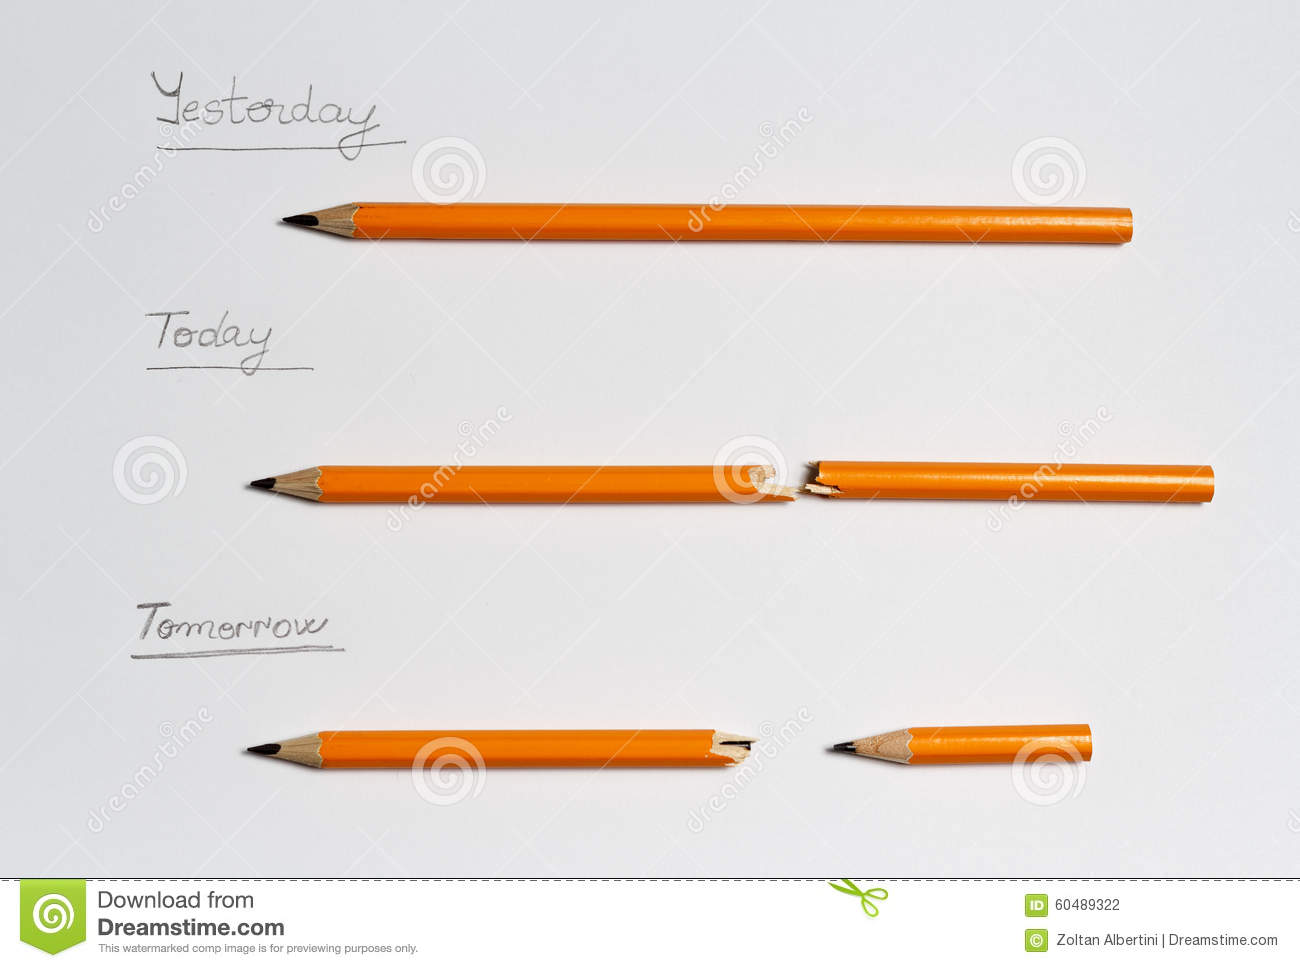 Yesterday, Today, Tomorrow Stock Photo - Image: 60489322